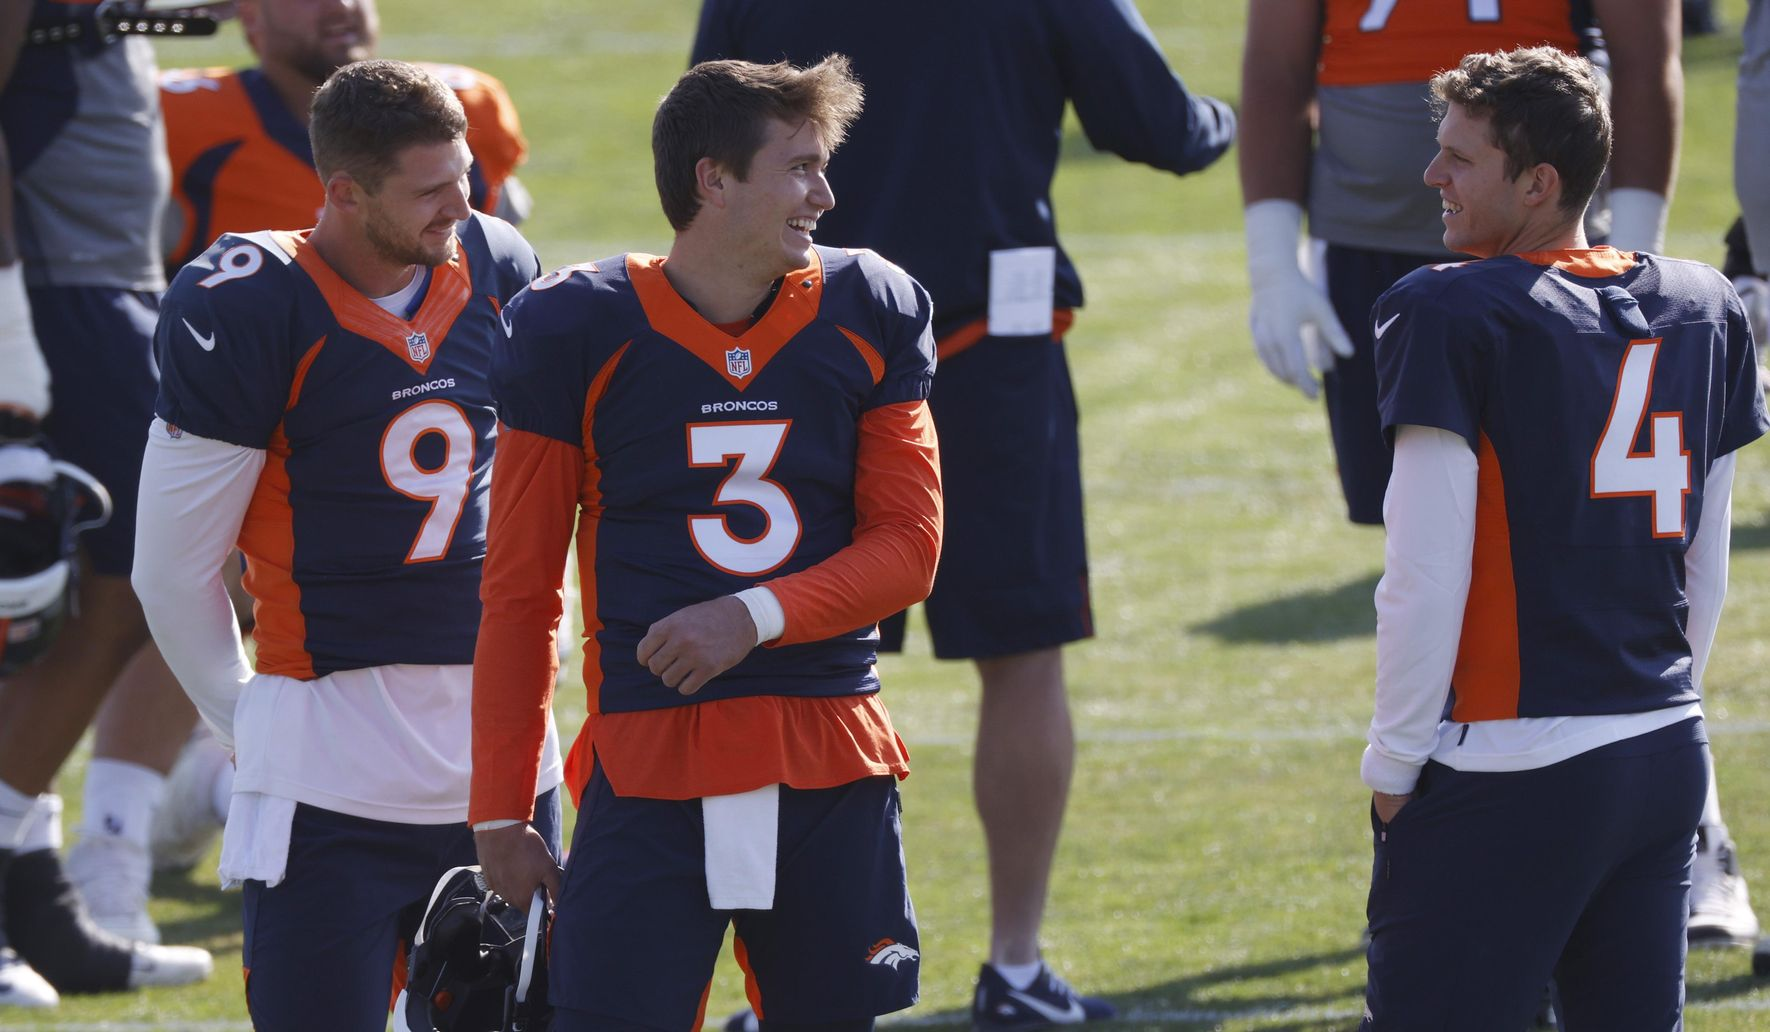 Broncos_qbs_return_football_99604_c0-193-4951-3079_s1770x1032